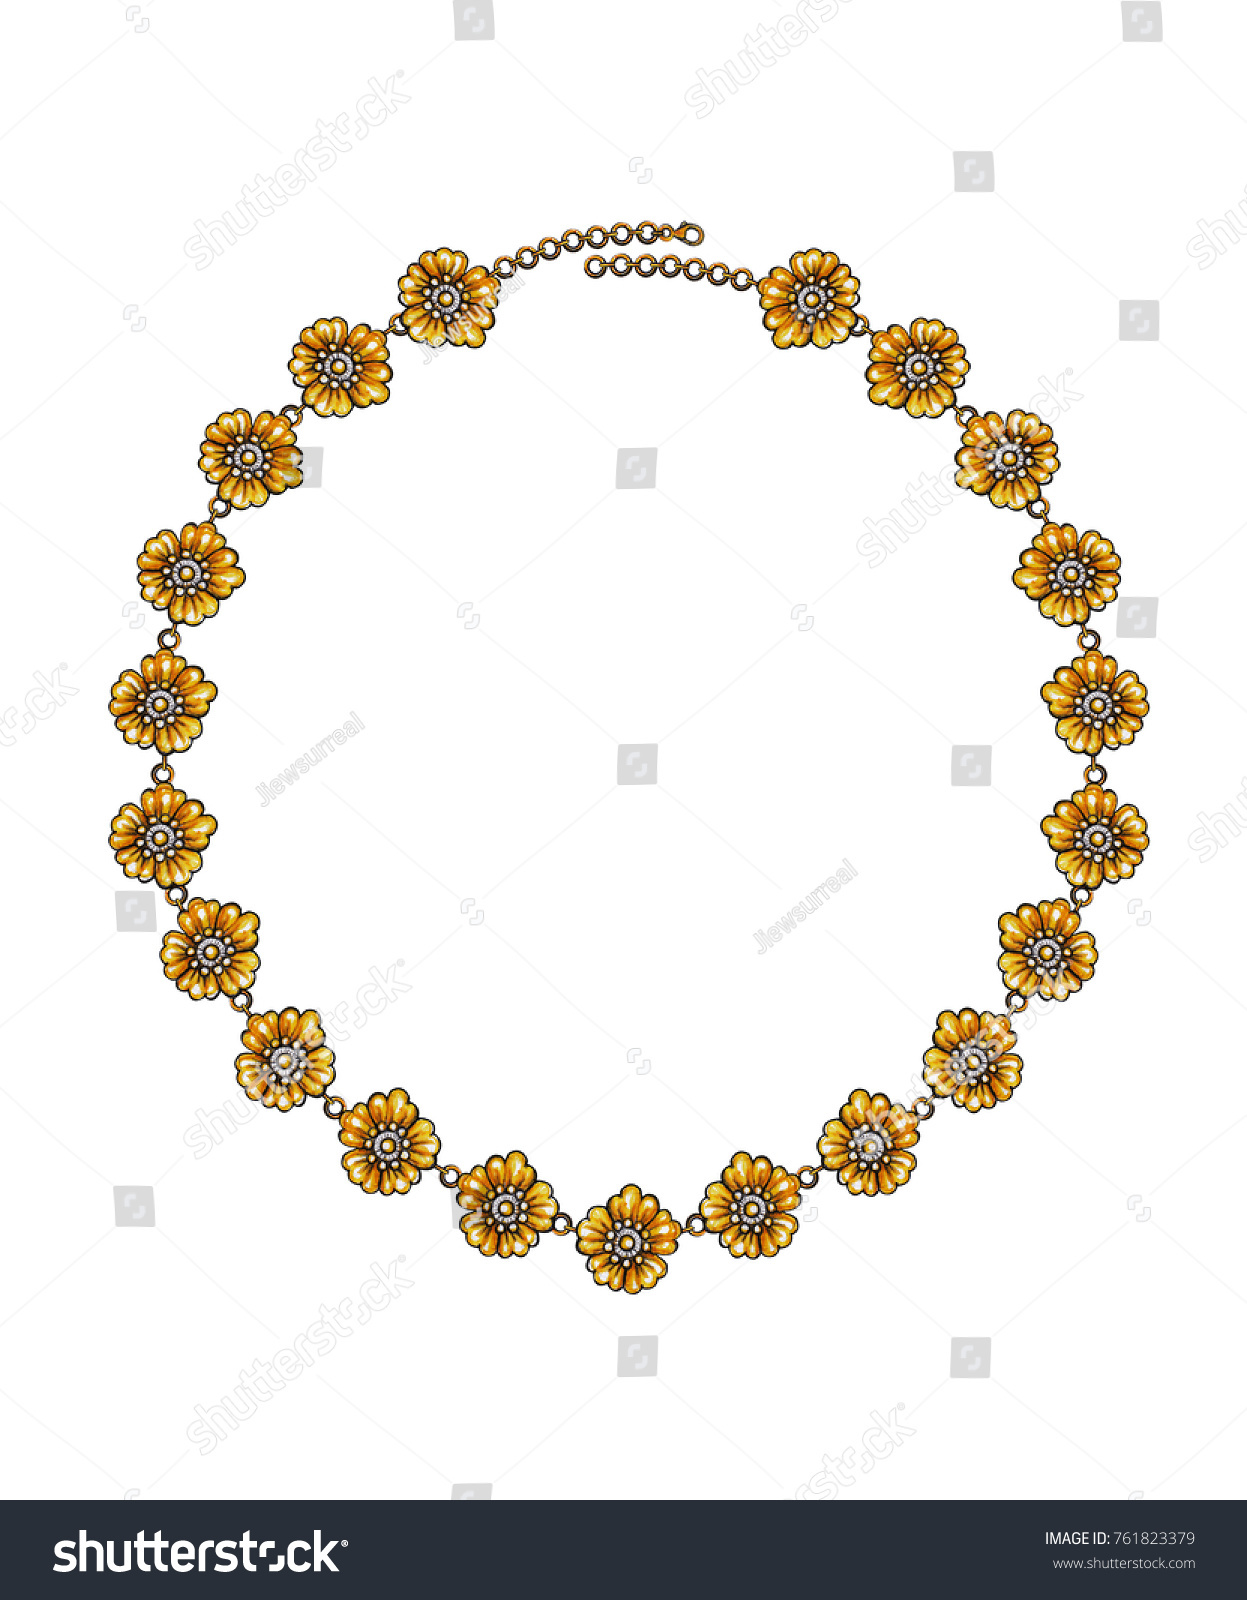 Jewelry Design Flower Gold Necklacehand Drawing Stock Illustration ...